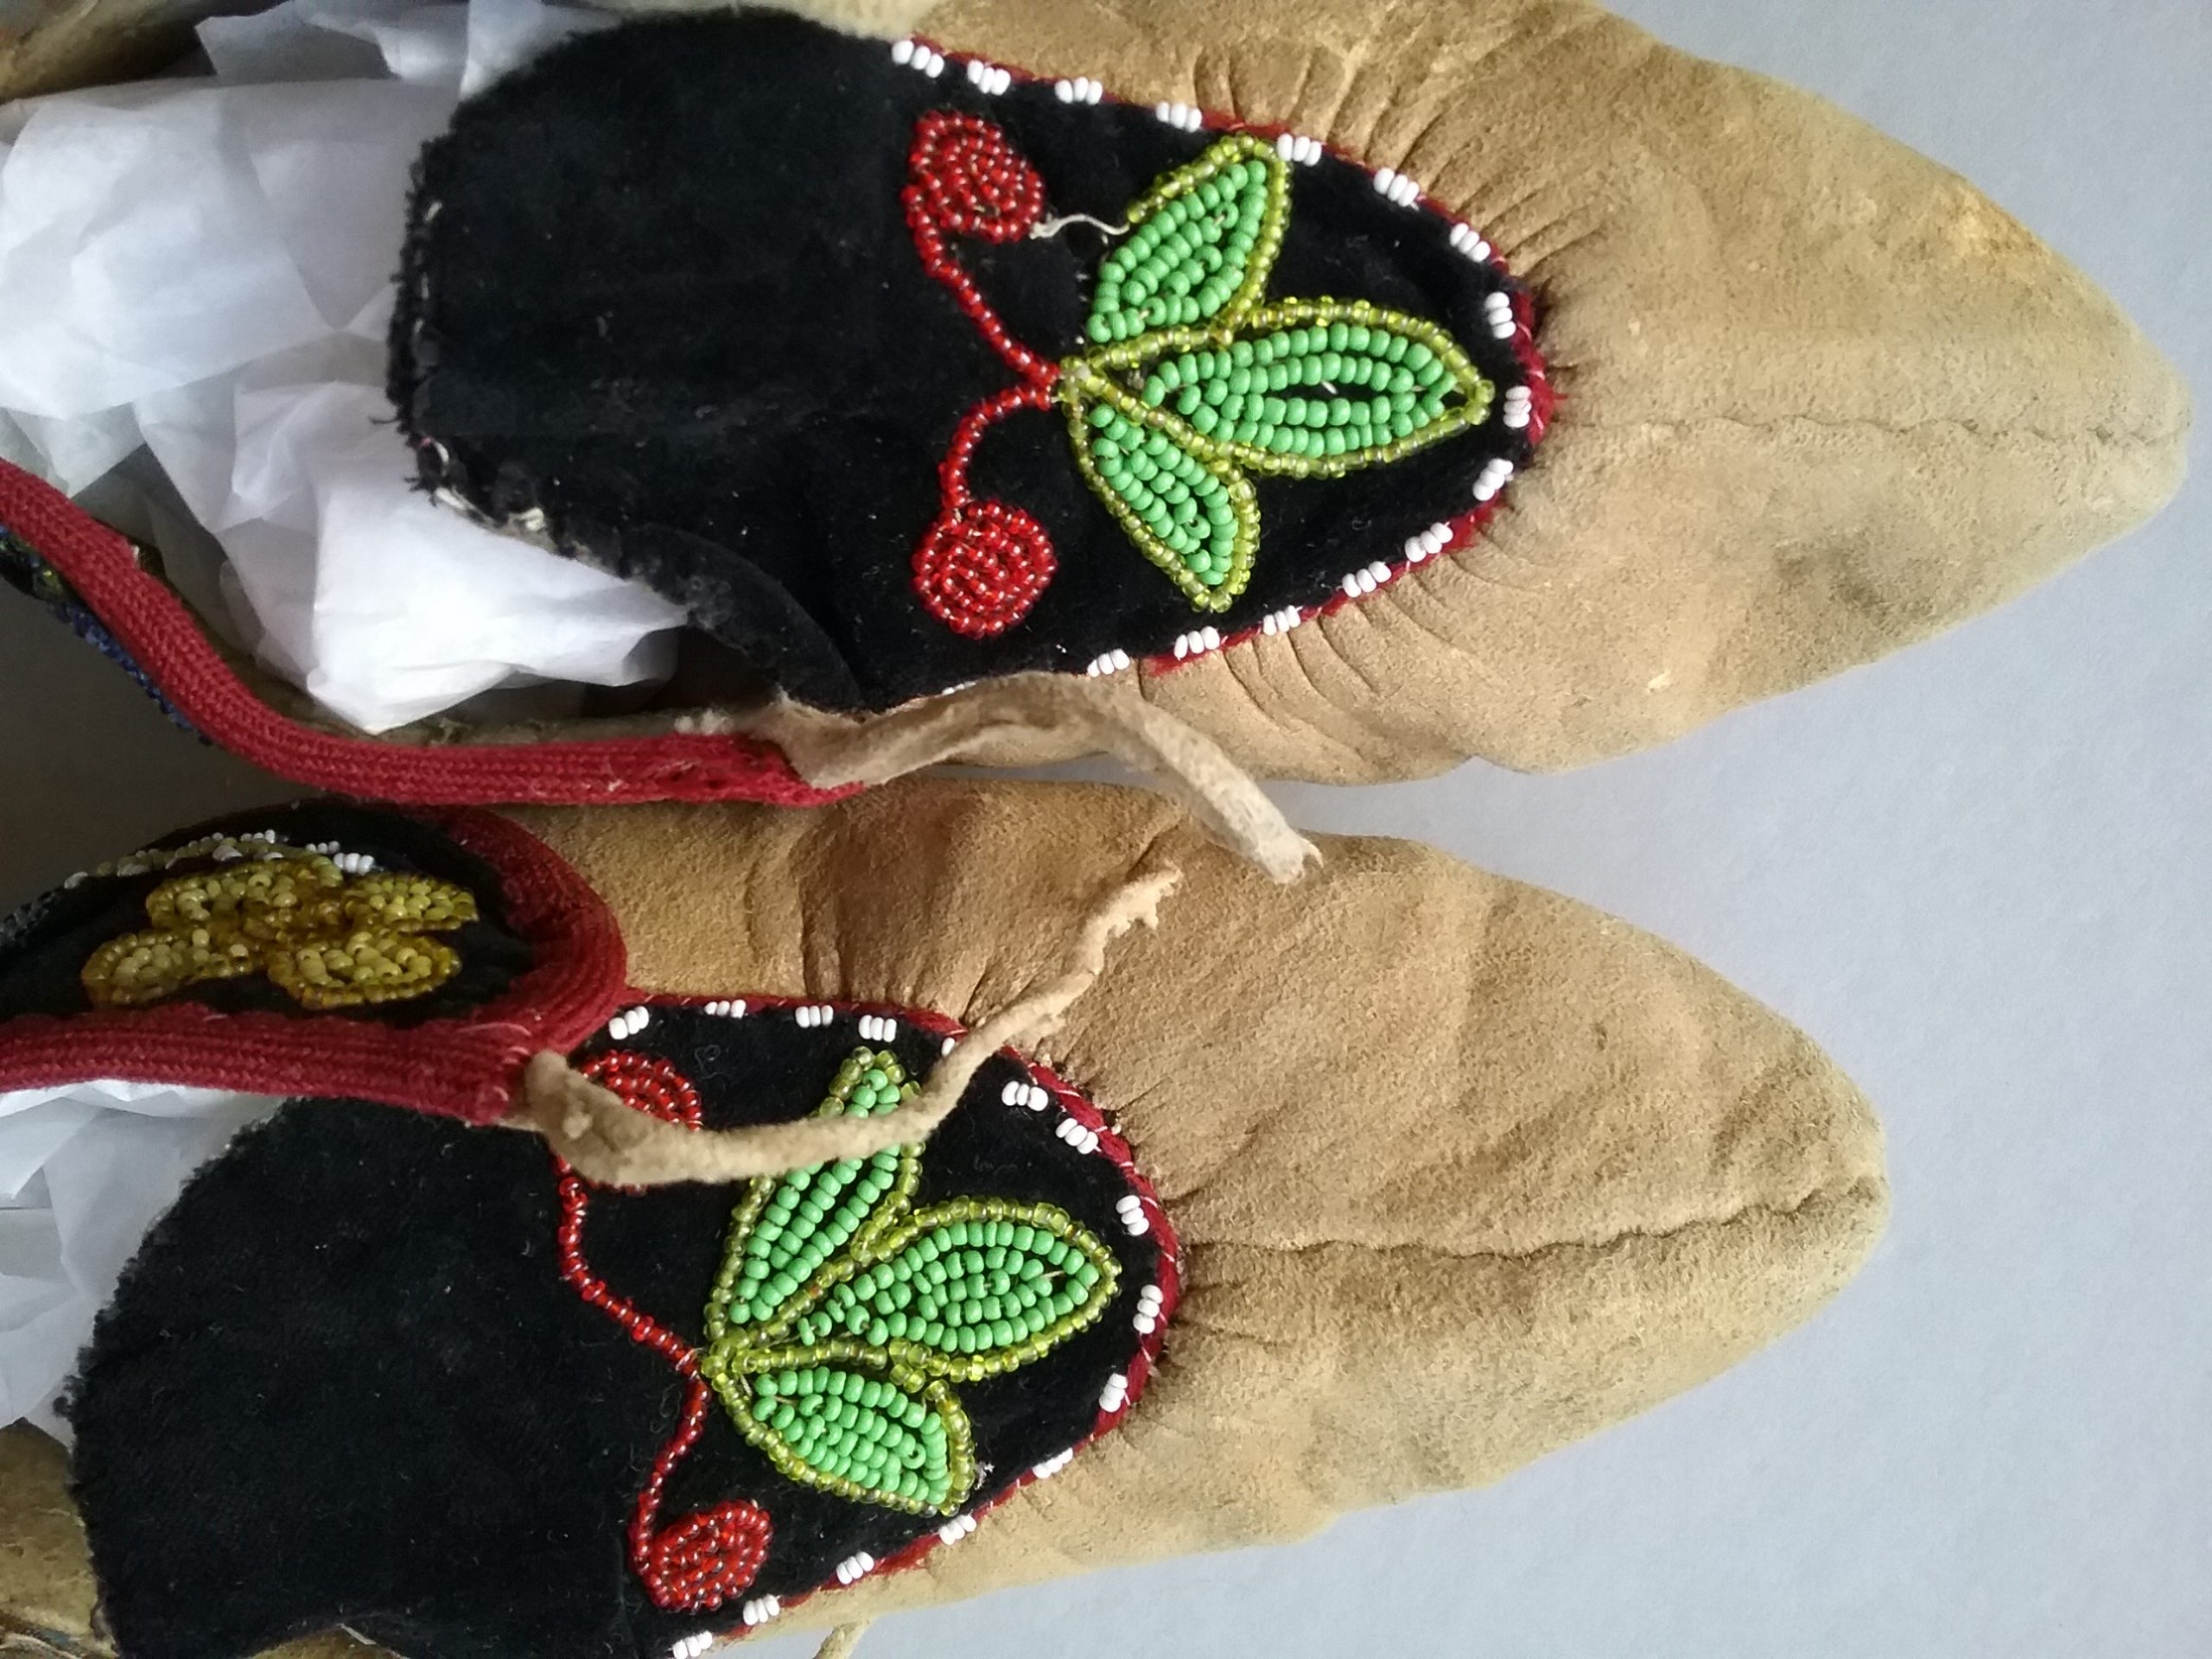 Detail on Ojibwe beaded leather moccasins. MCHS collections, #2005.97.27a&b